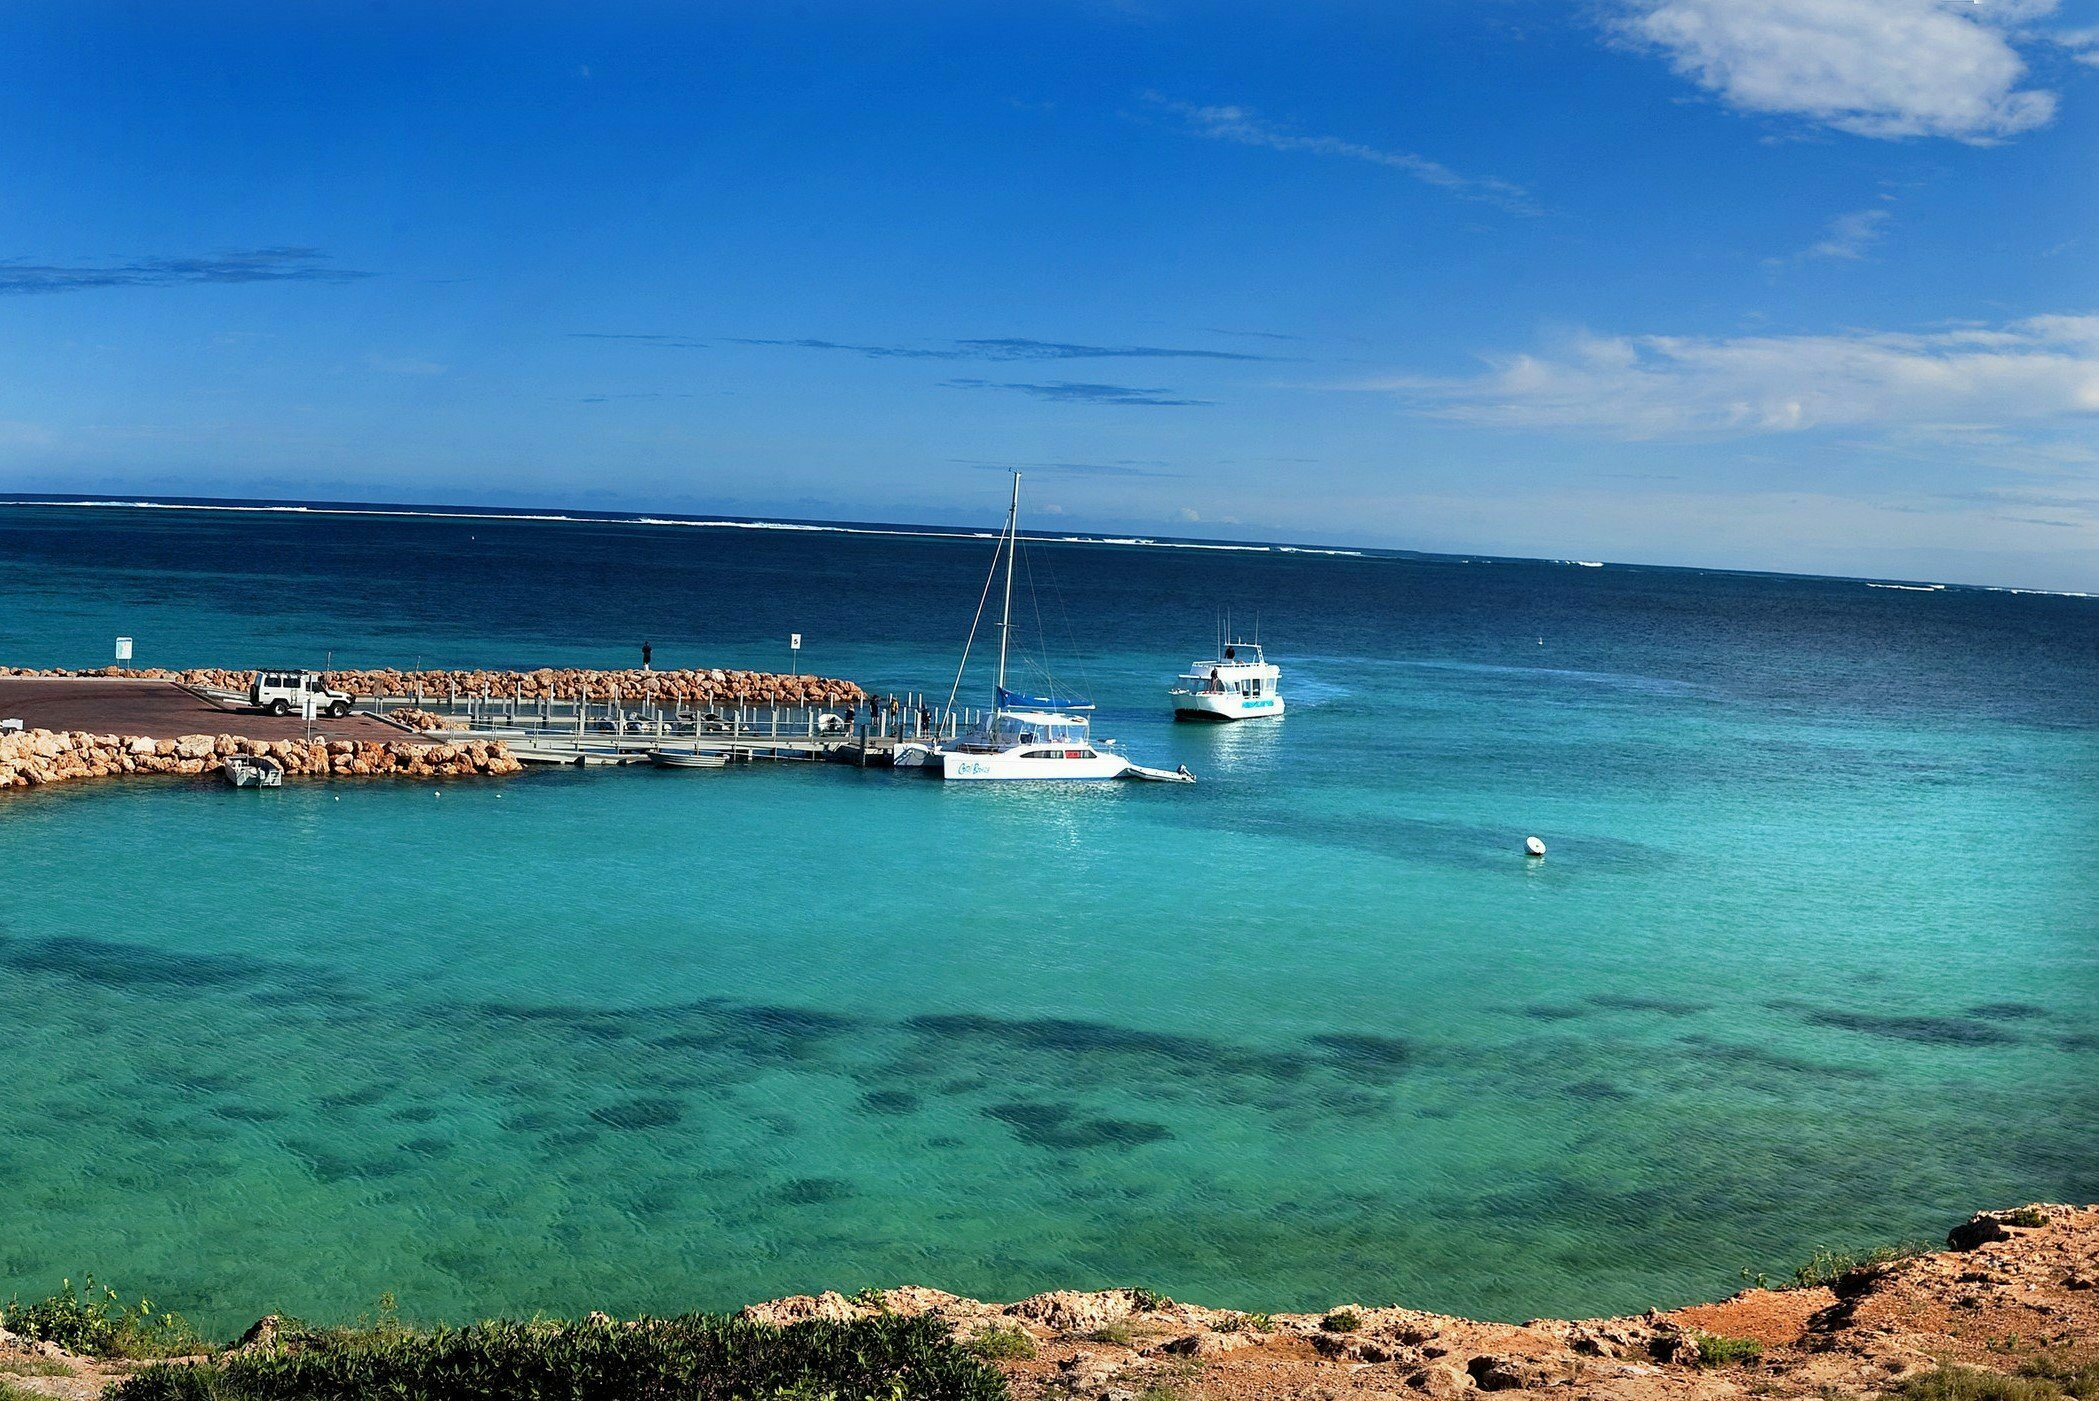 Ningaloo Marine Park visited on our Perth to Broome tour